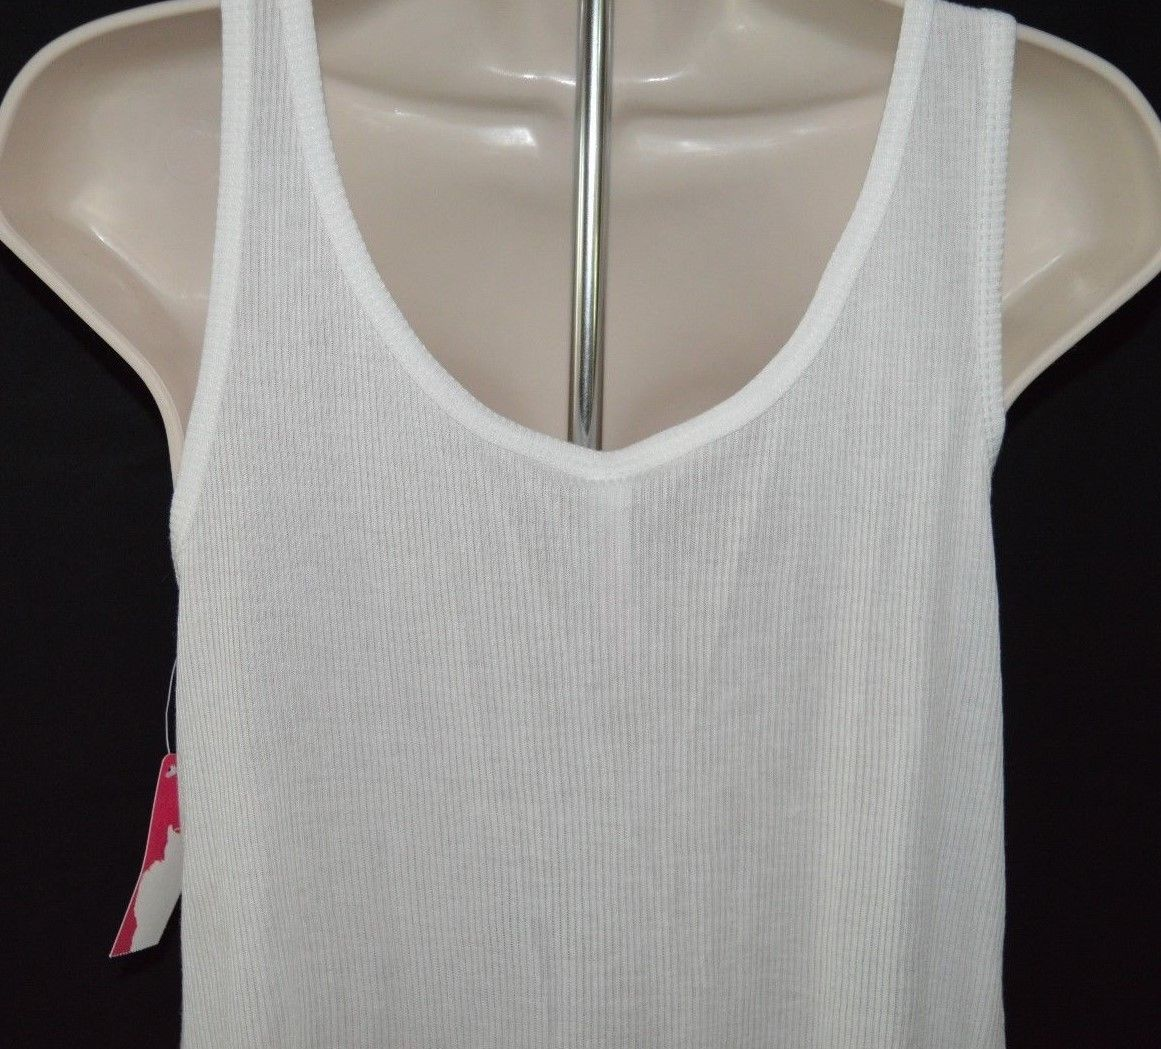 Women's Xhilaration ™Sleep Tank Top With Drawstring In Front Fresh White Size S image 7